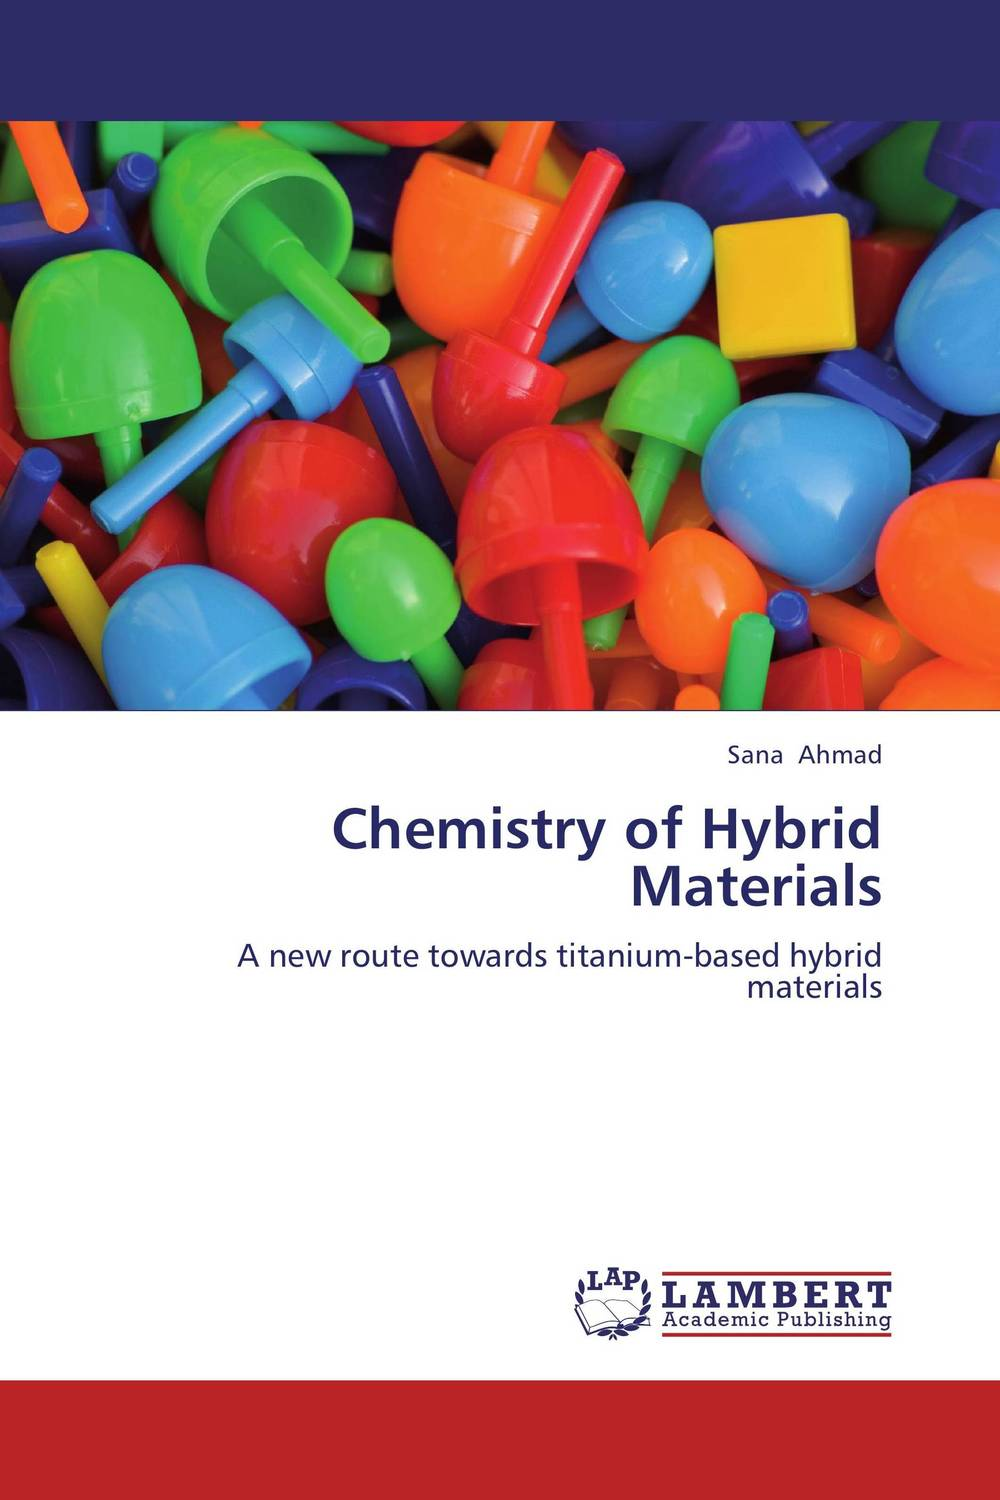 Chemistry of Hybrid Materials simranjeet kaur amaninder singh and pranav gupta surface properties of dental materials under simulated tooth wear